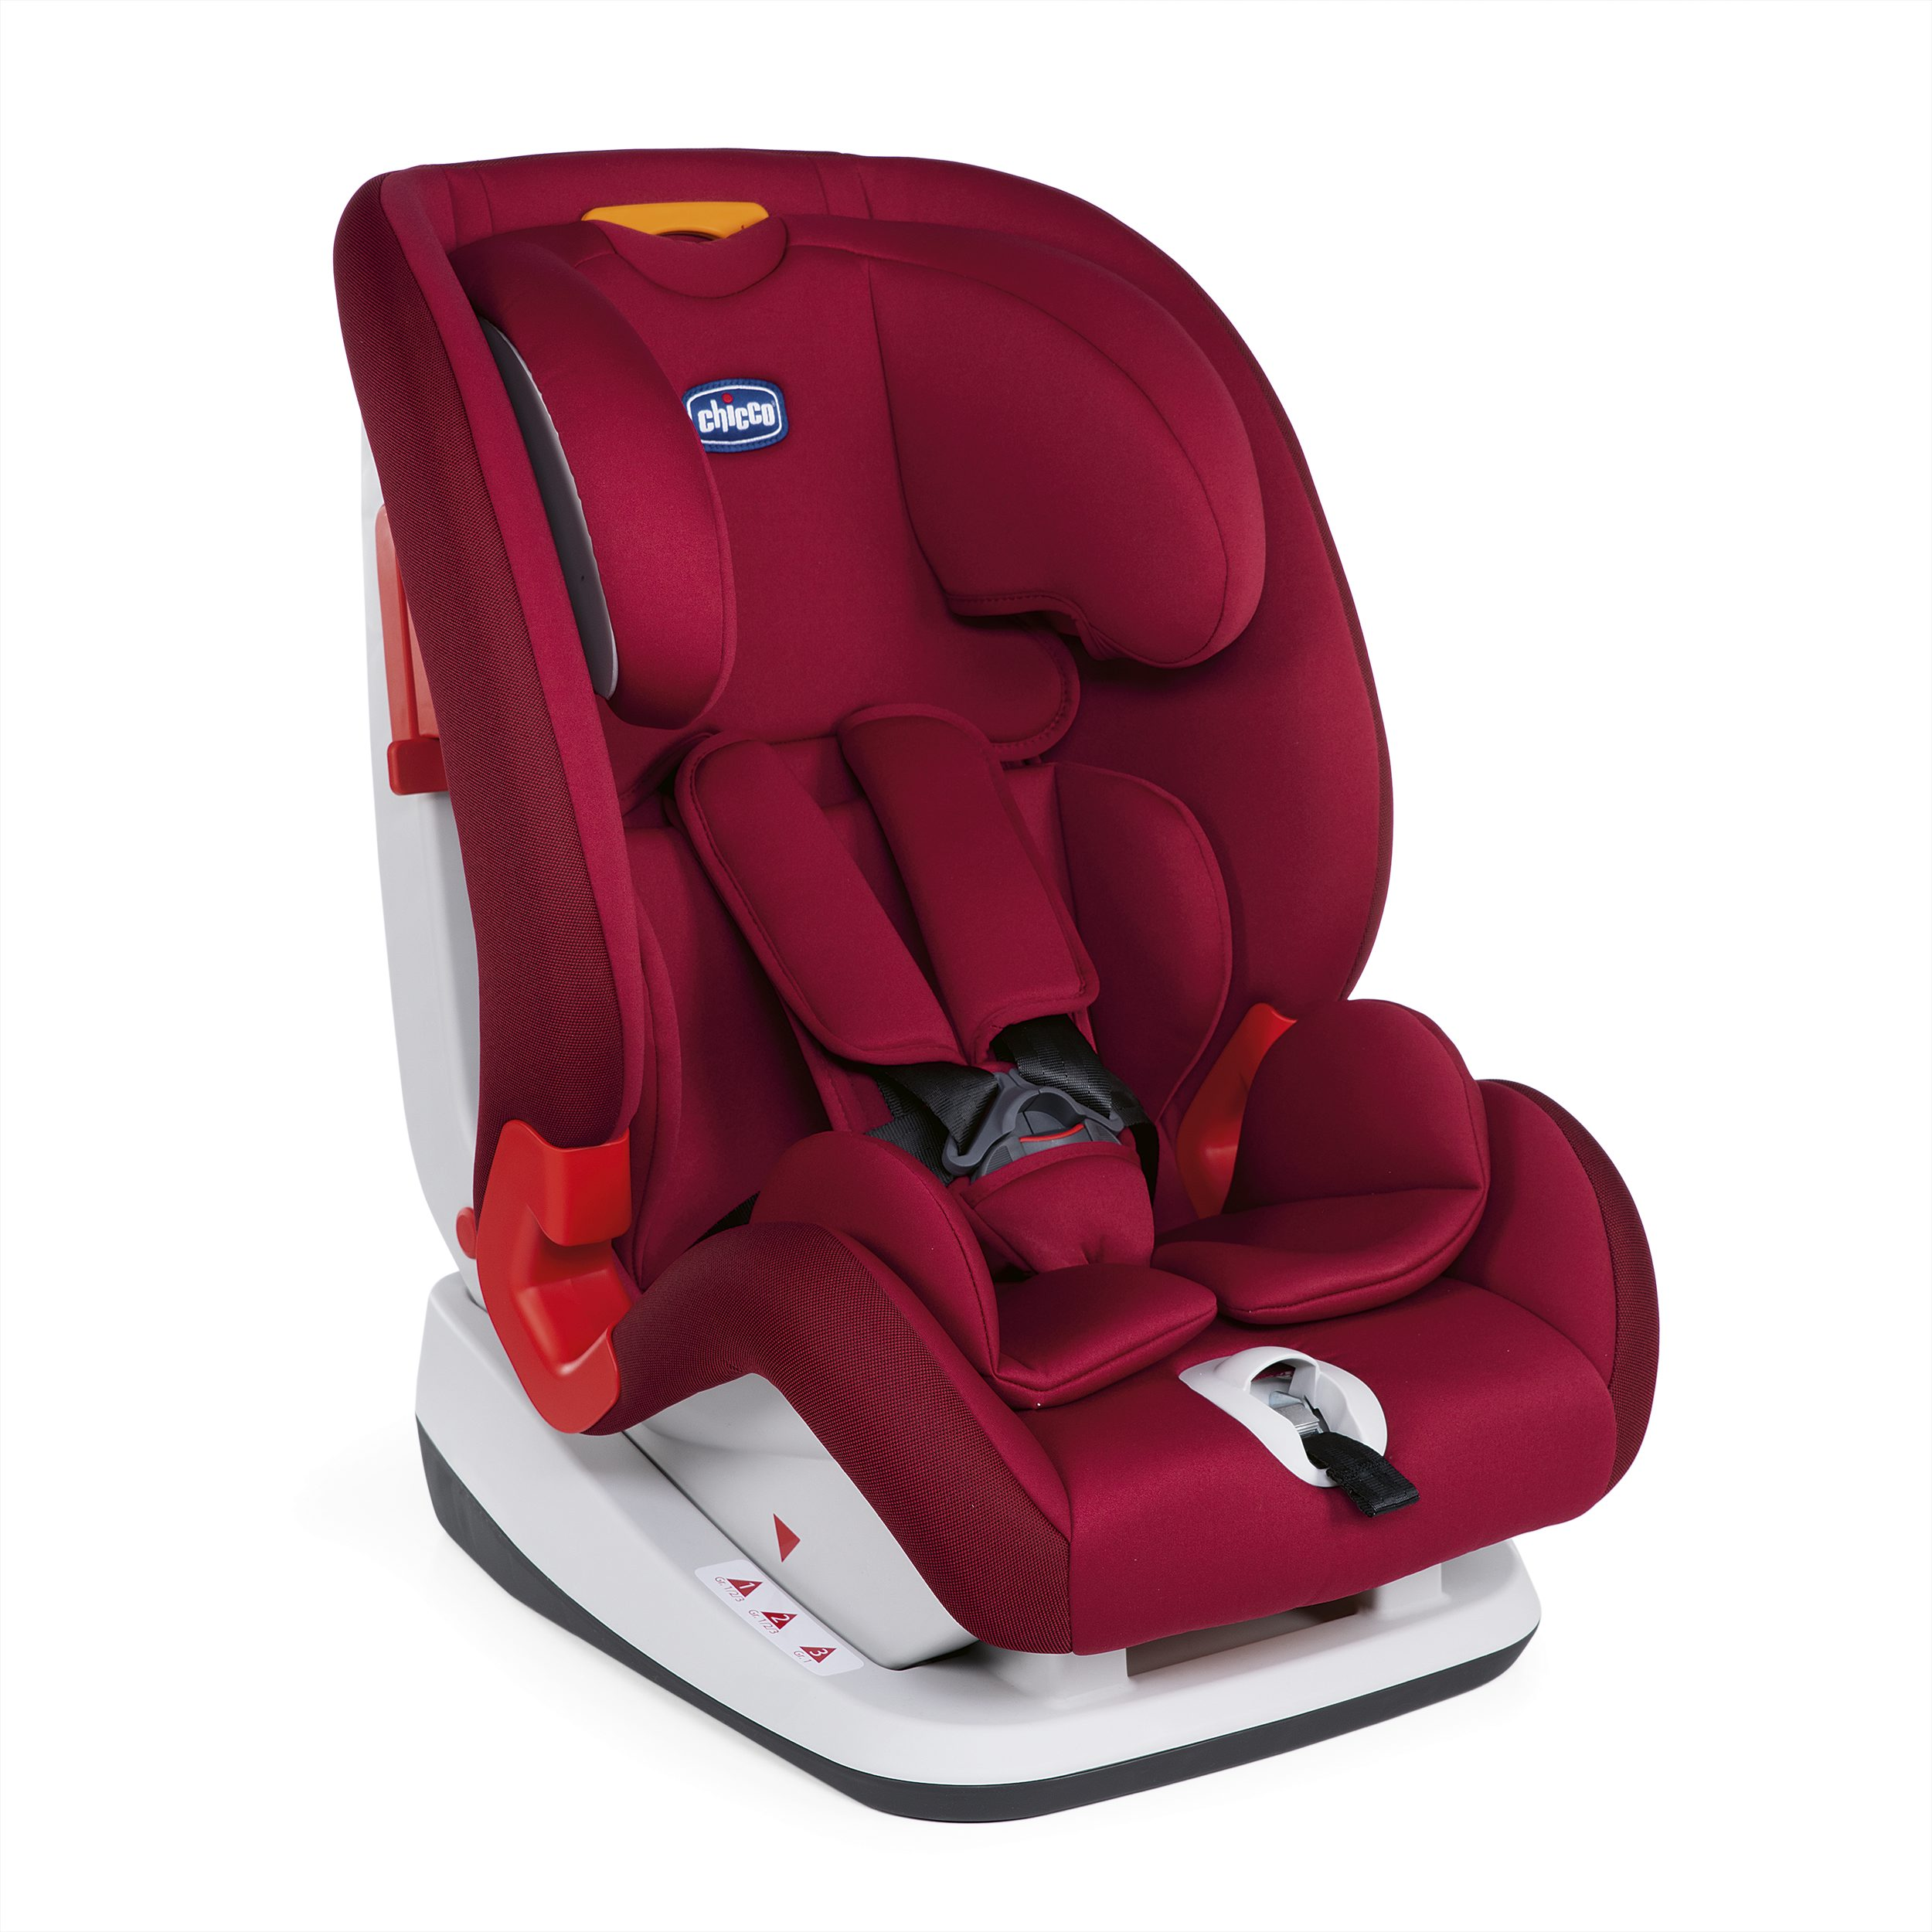 Автокресло Chicco YOUNIVERSE STANDARD RED PASSION, красный